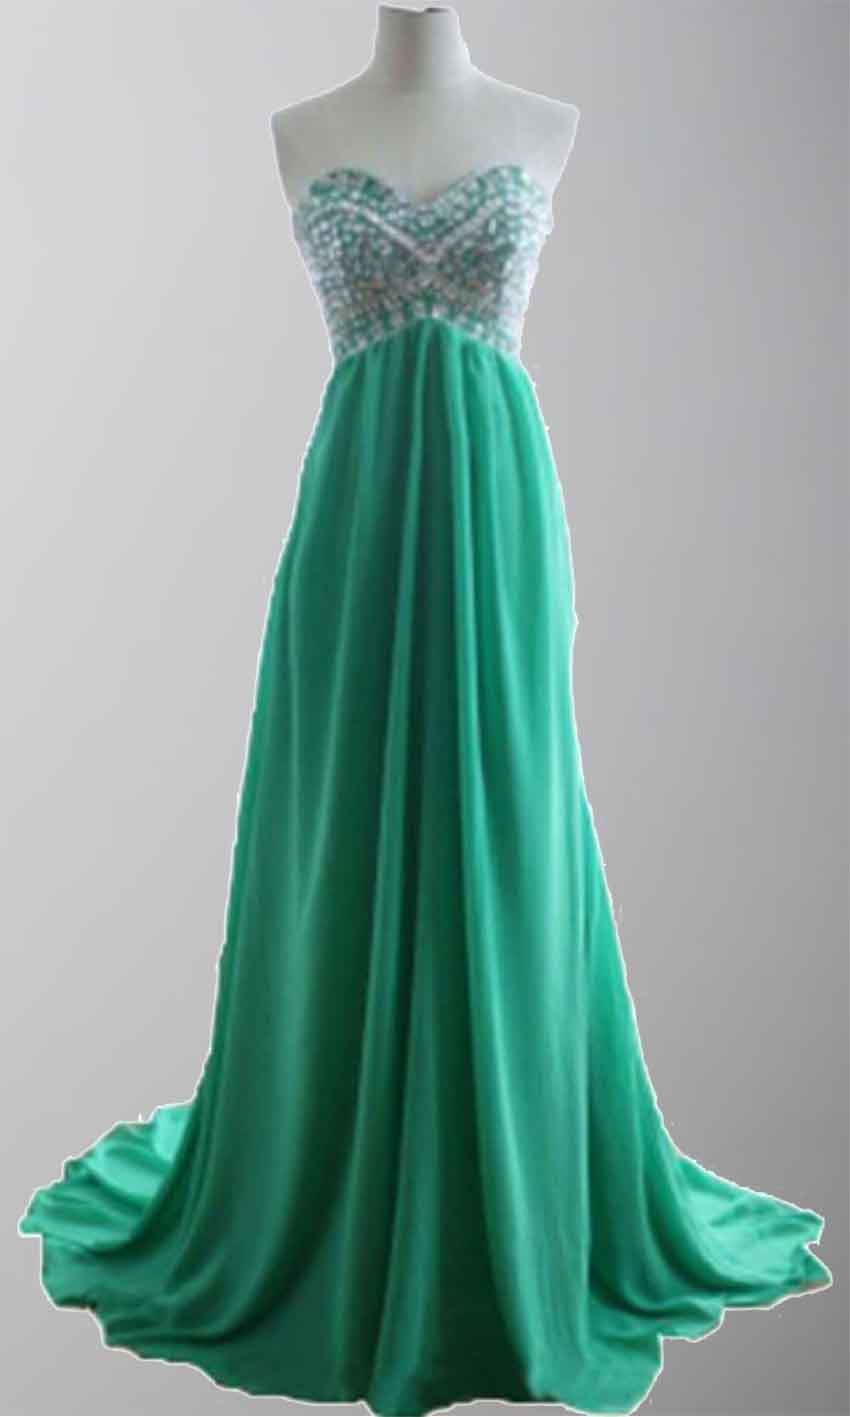 Green Sweetheart Sequin Floor Length Prom Dresses KSP306 [KSP306] - £94.00 : Cheap Prom Dresses Uk, Bridesmaid Dresses, 2014 Prom & Evening Dresses, Look for cheap elegant prom dresses 2014, cocktail gowns, or dresses for special occasions? kissprom.co.uk offers various bridesmaid dresses, evening dress, free shipping to UK etc.